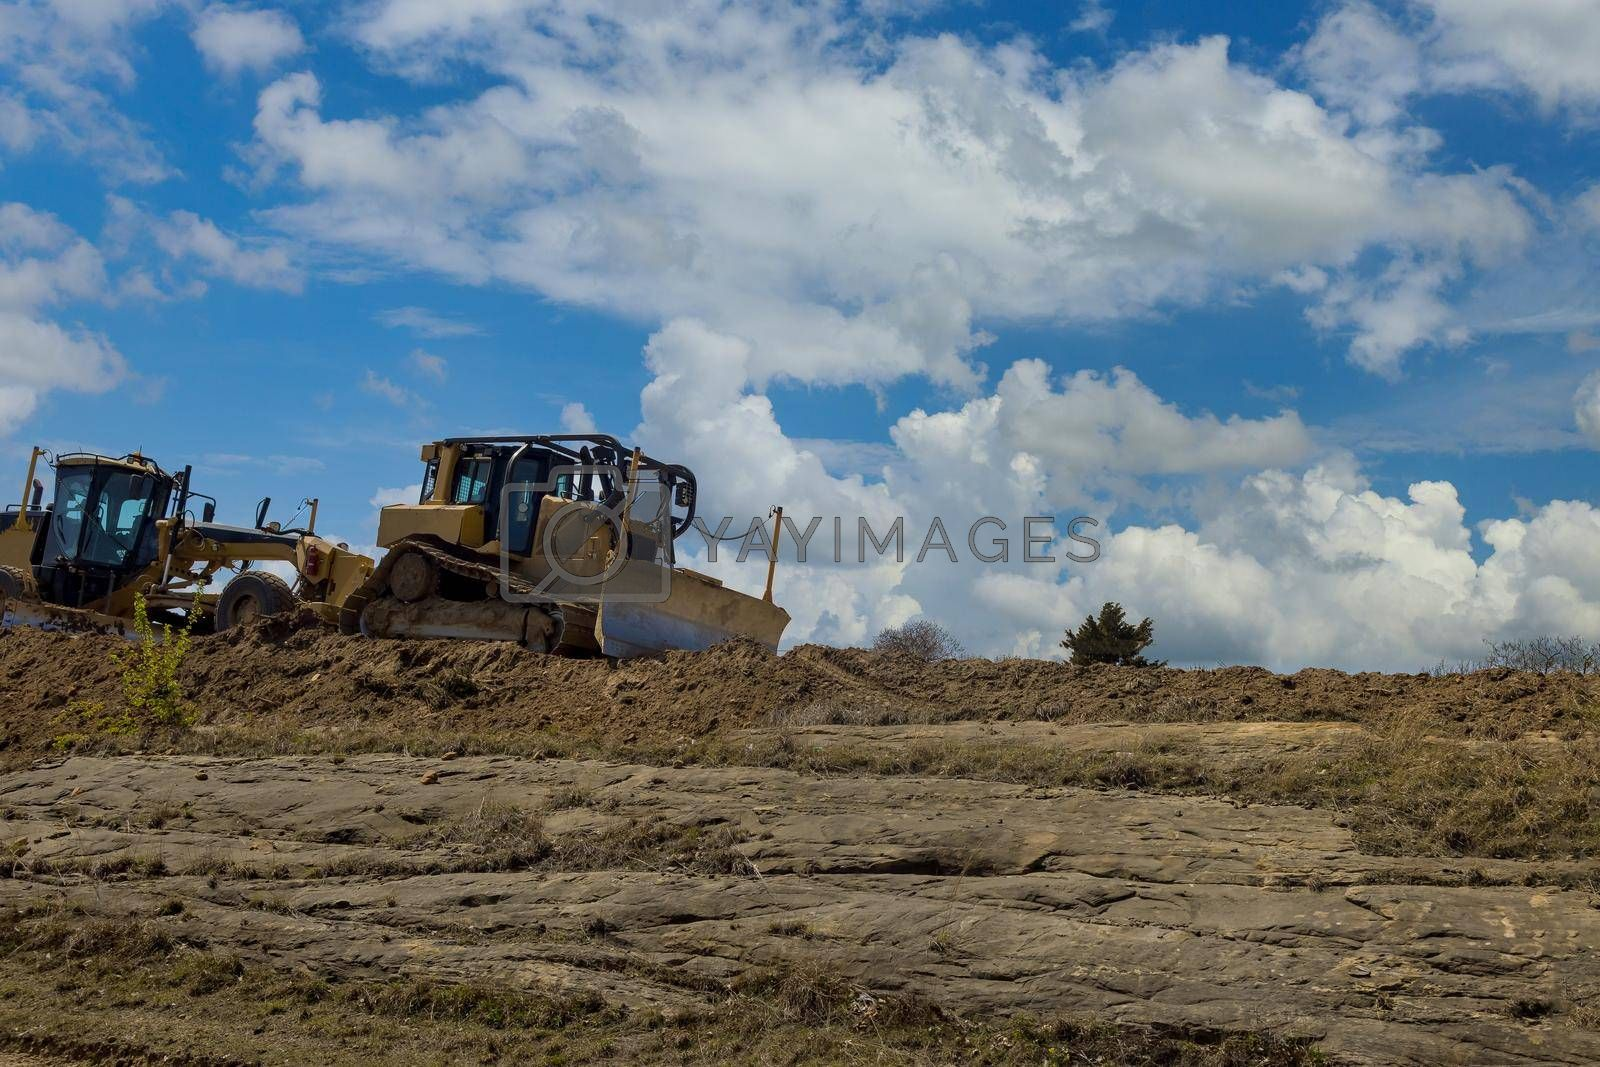 The excavators, graders in road working on the under construction site of a new road.